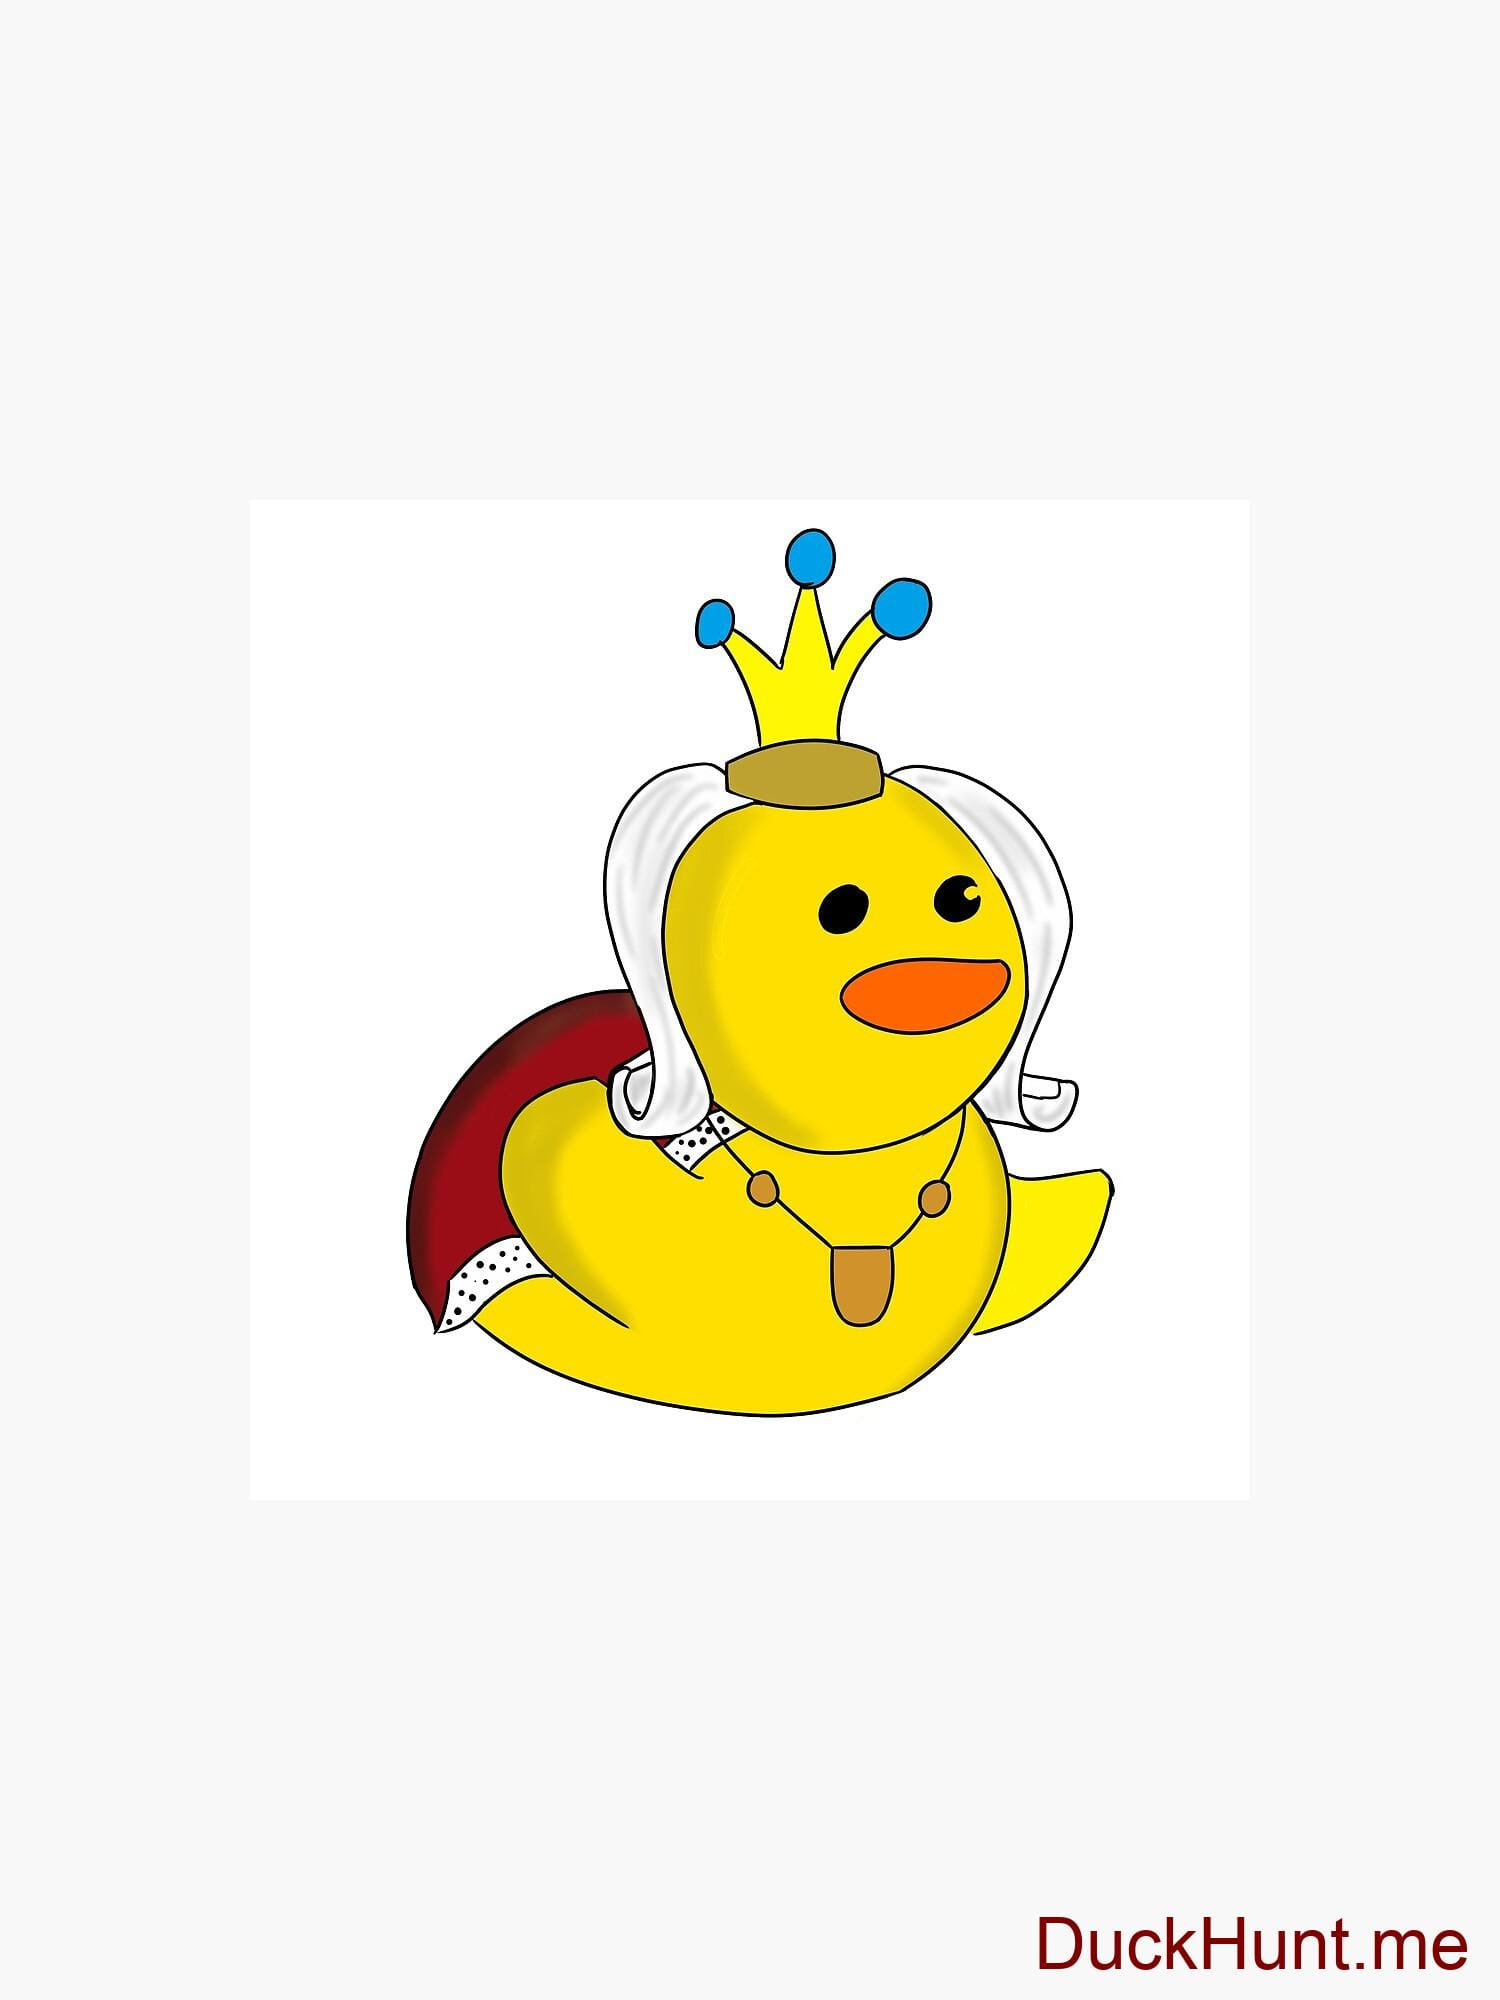 Royal Duck Throw Pillow alternative image 2